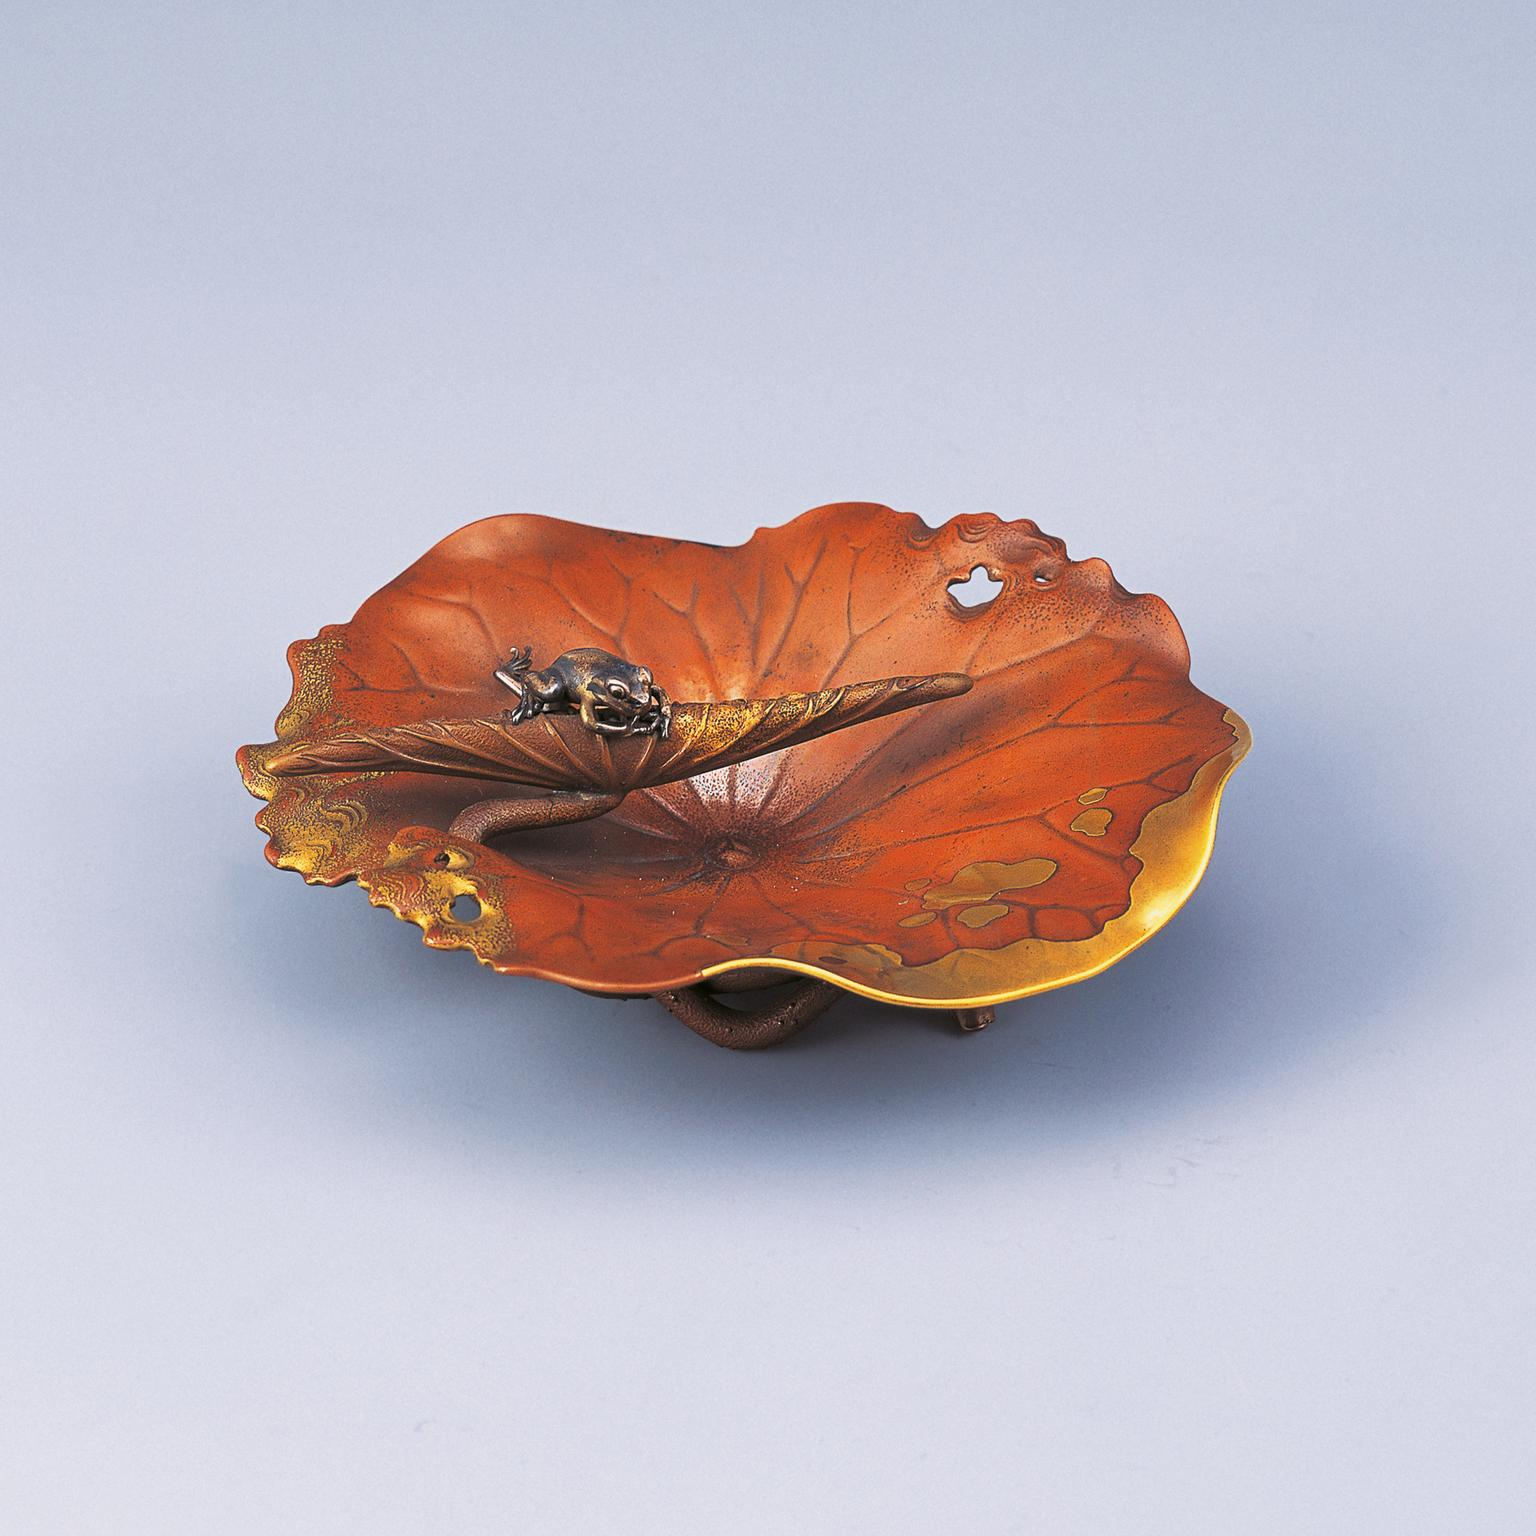 Shoami Katsuyoshi plate with lotus leaf and frog